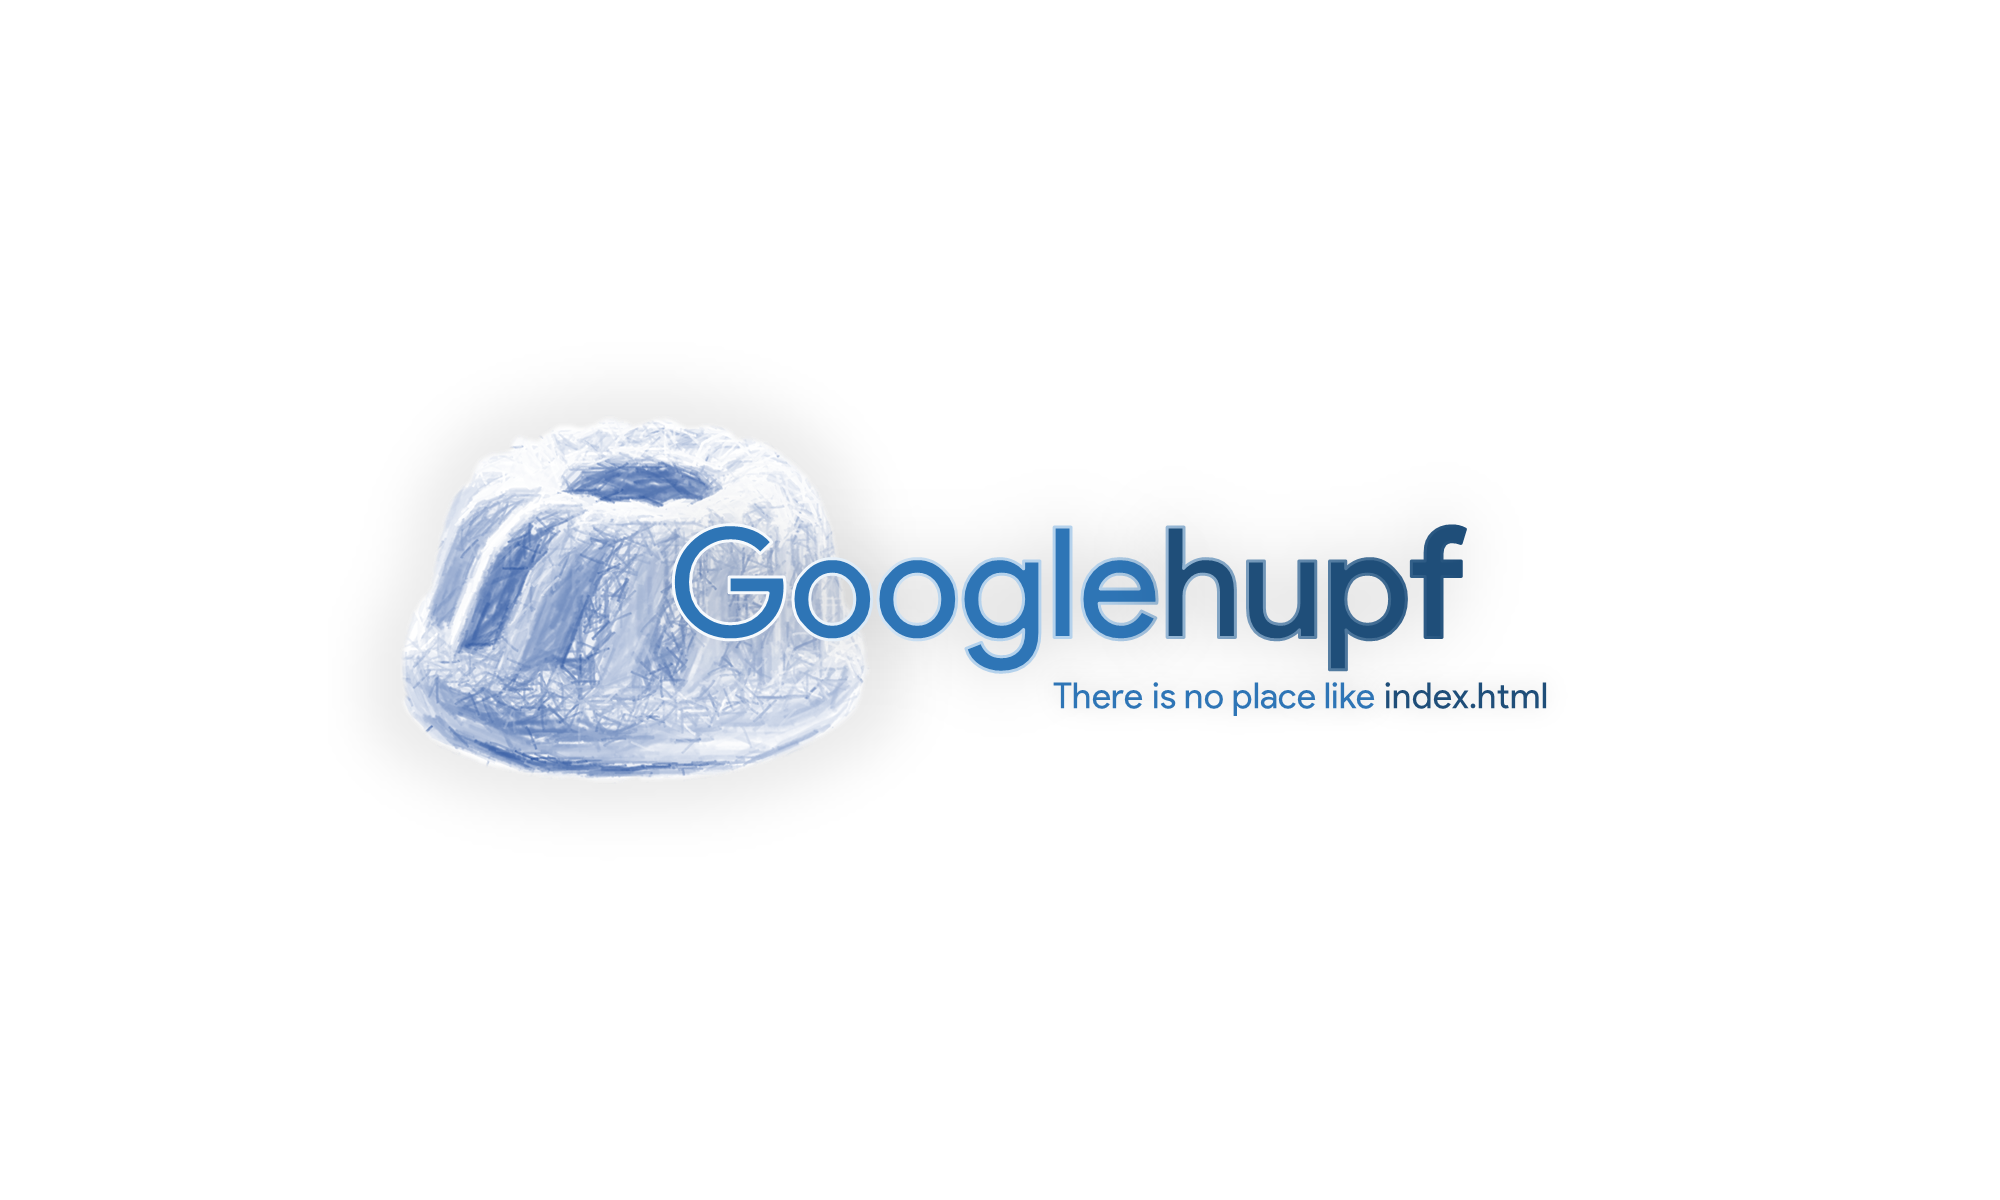 Googlehupf.at